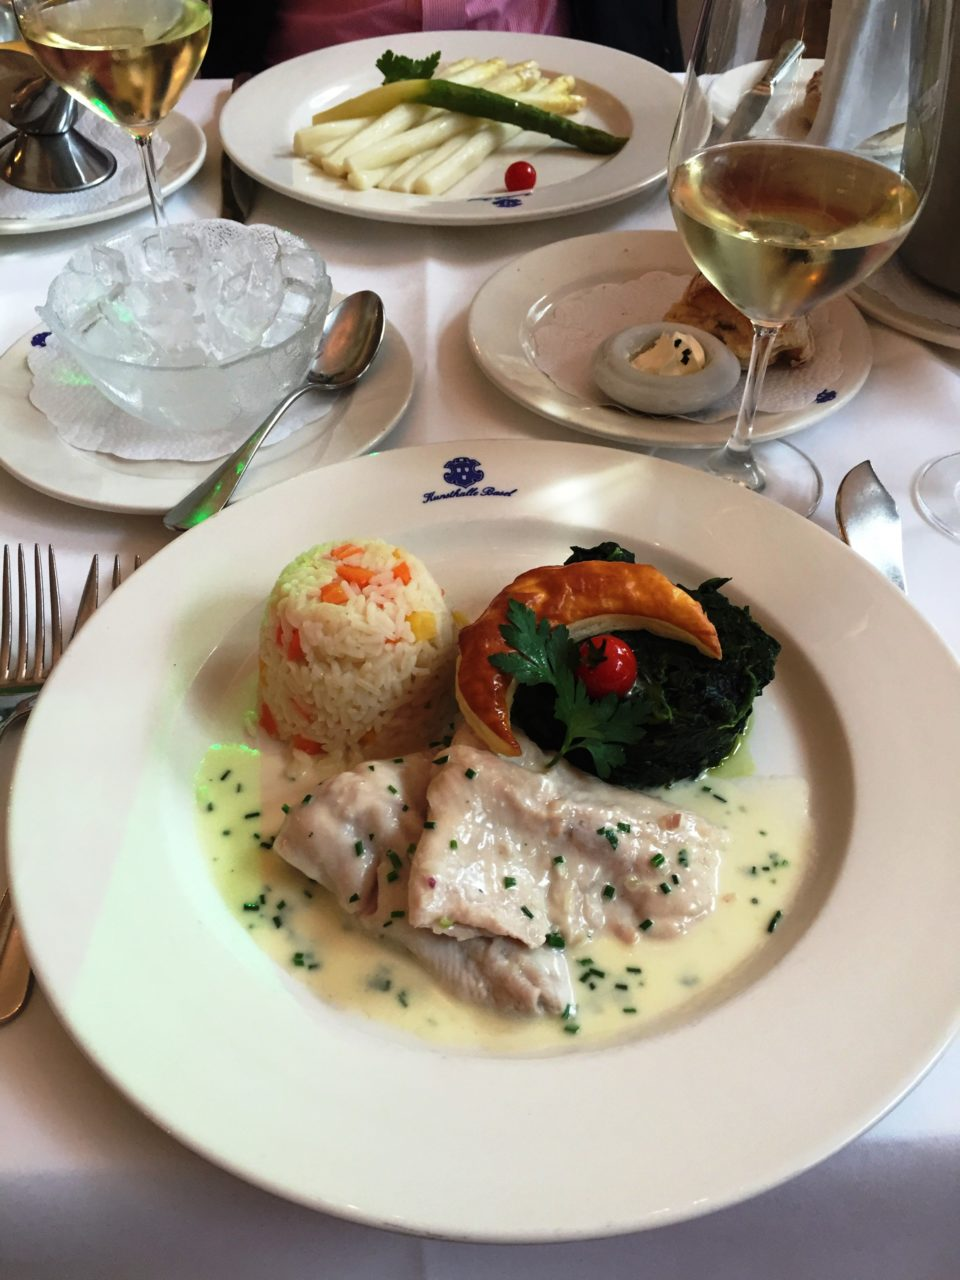 Exquisitely delicious lunch at the KunstHalle Restaurant in Basel, Switzerland